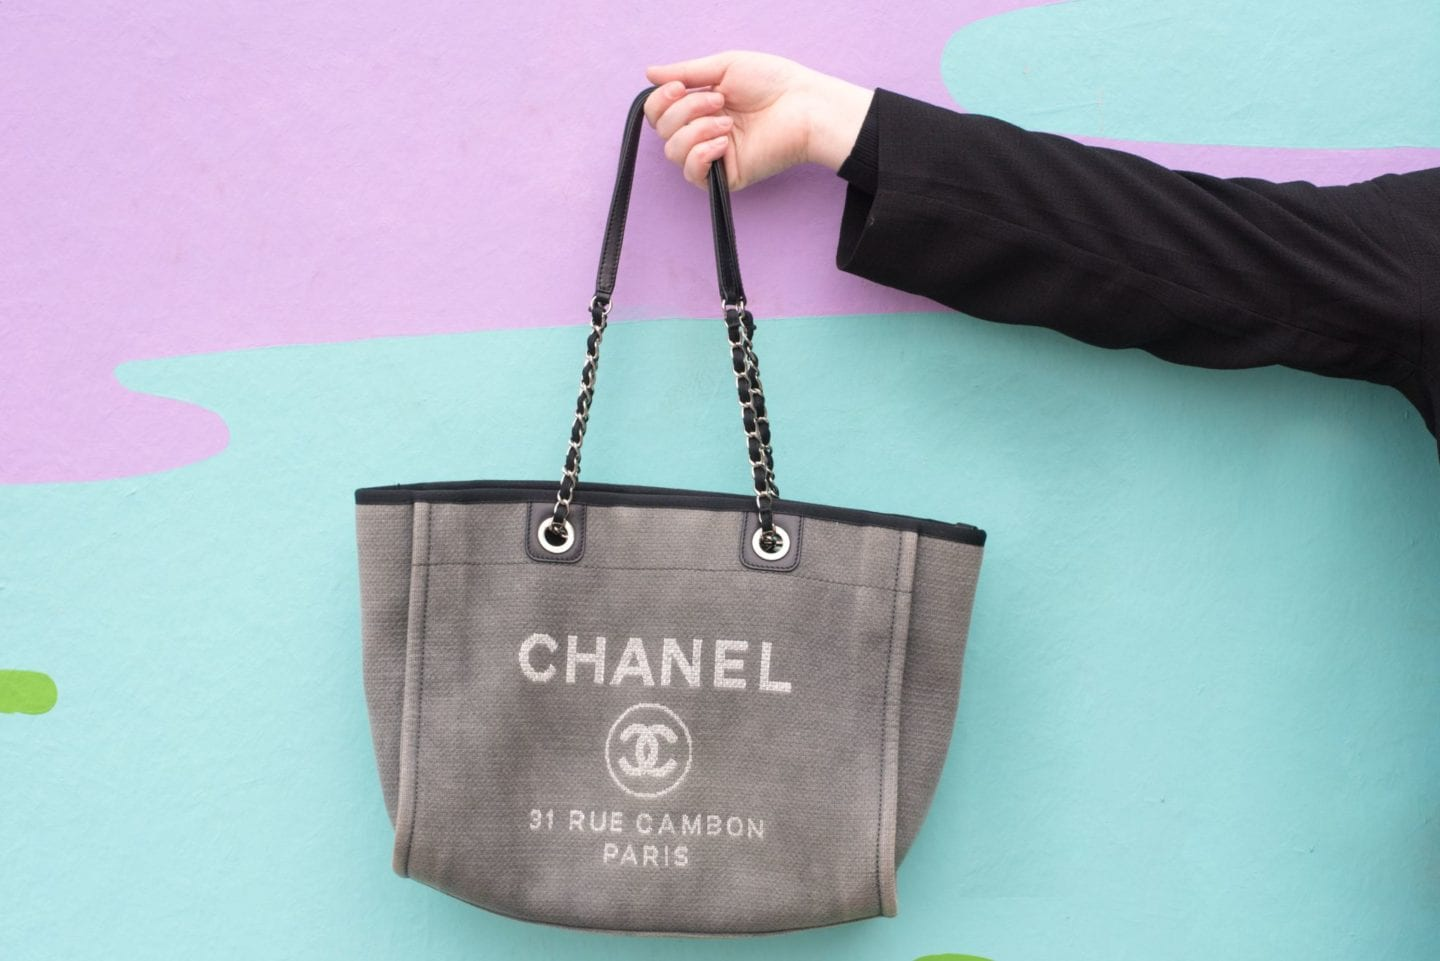 Chanel Deauville Tote Bag detail grey canvas tote bag 2012